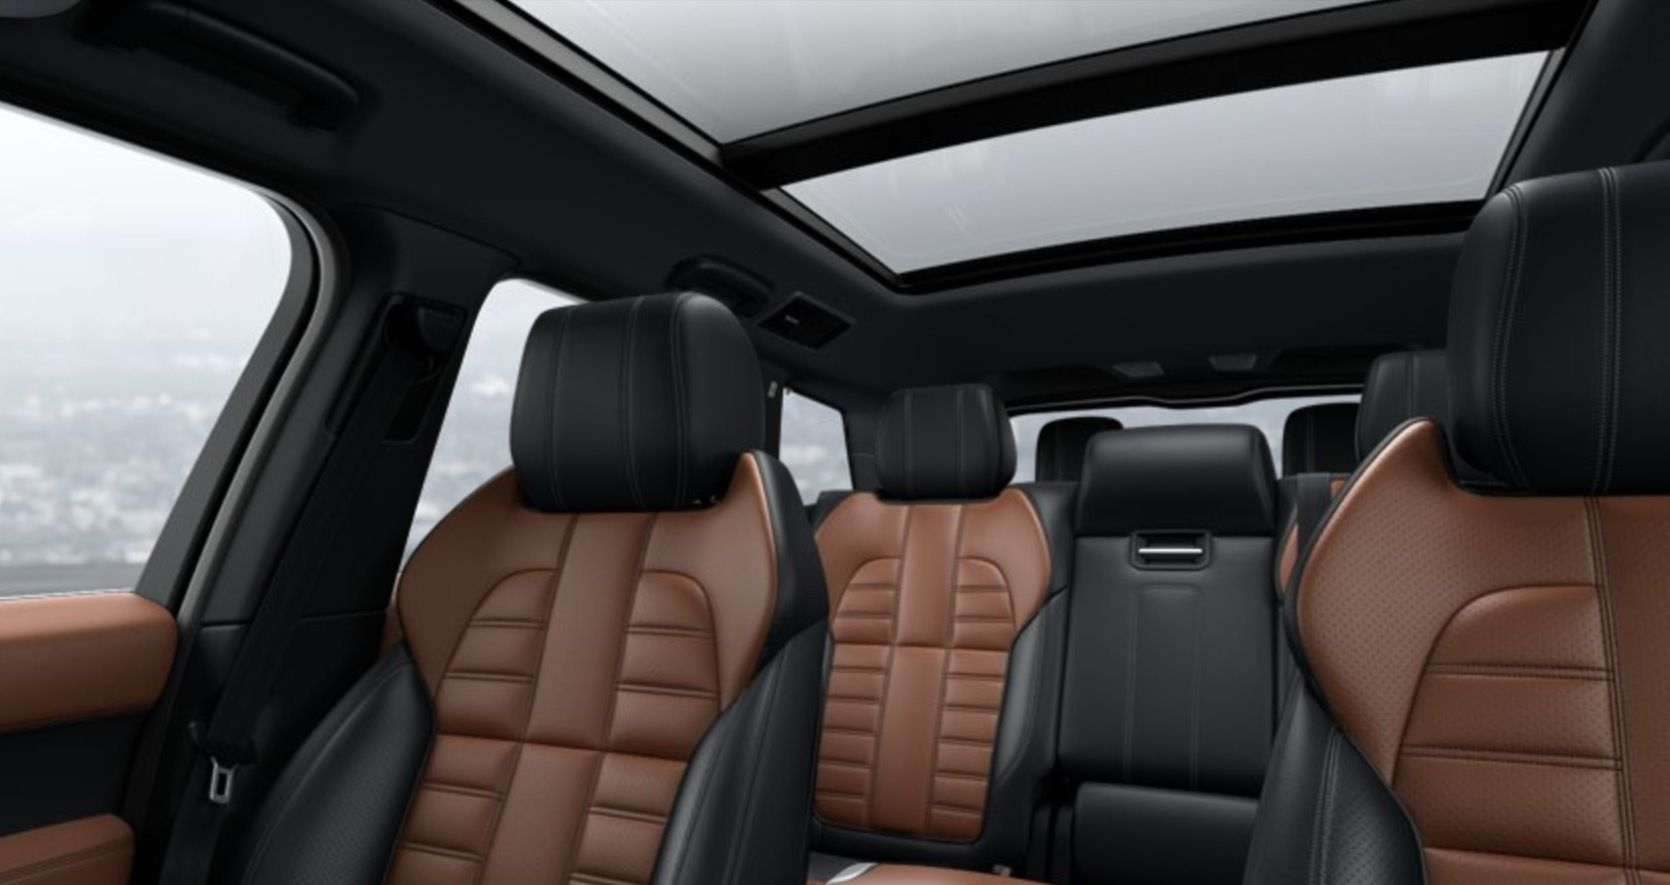 Interior back view of 2014 Range Rover Sport